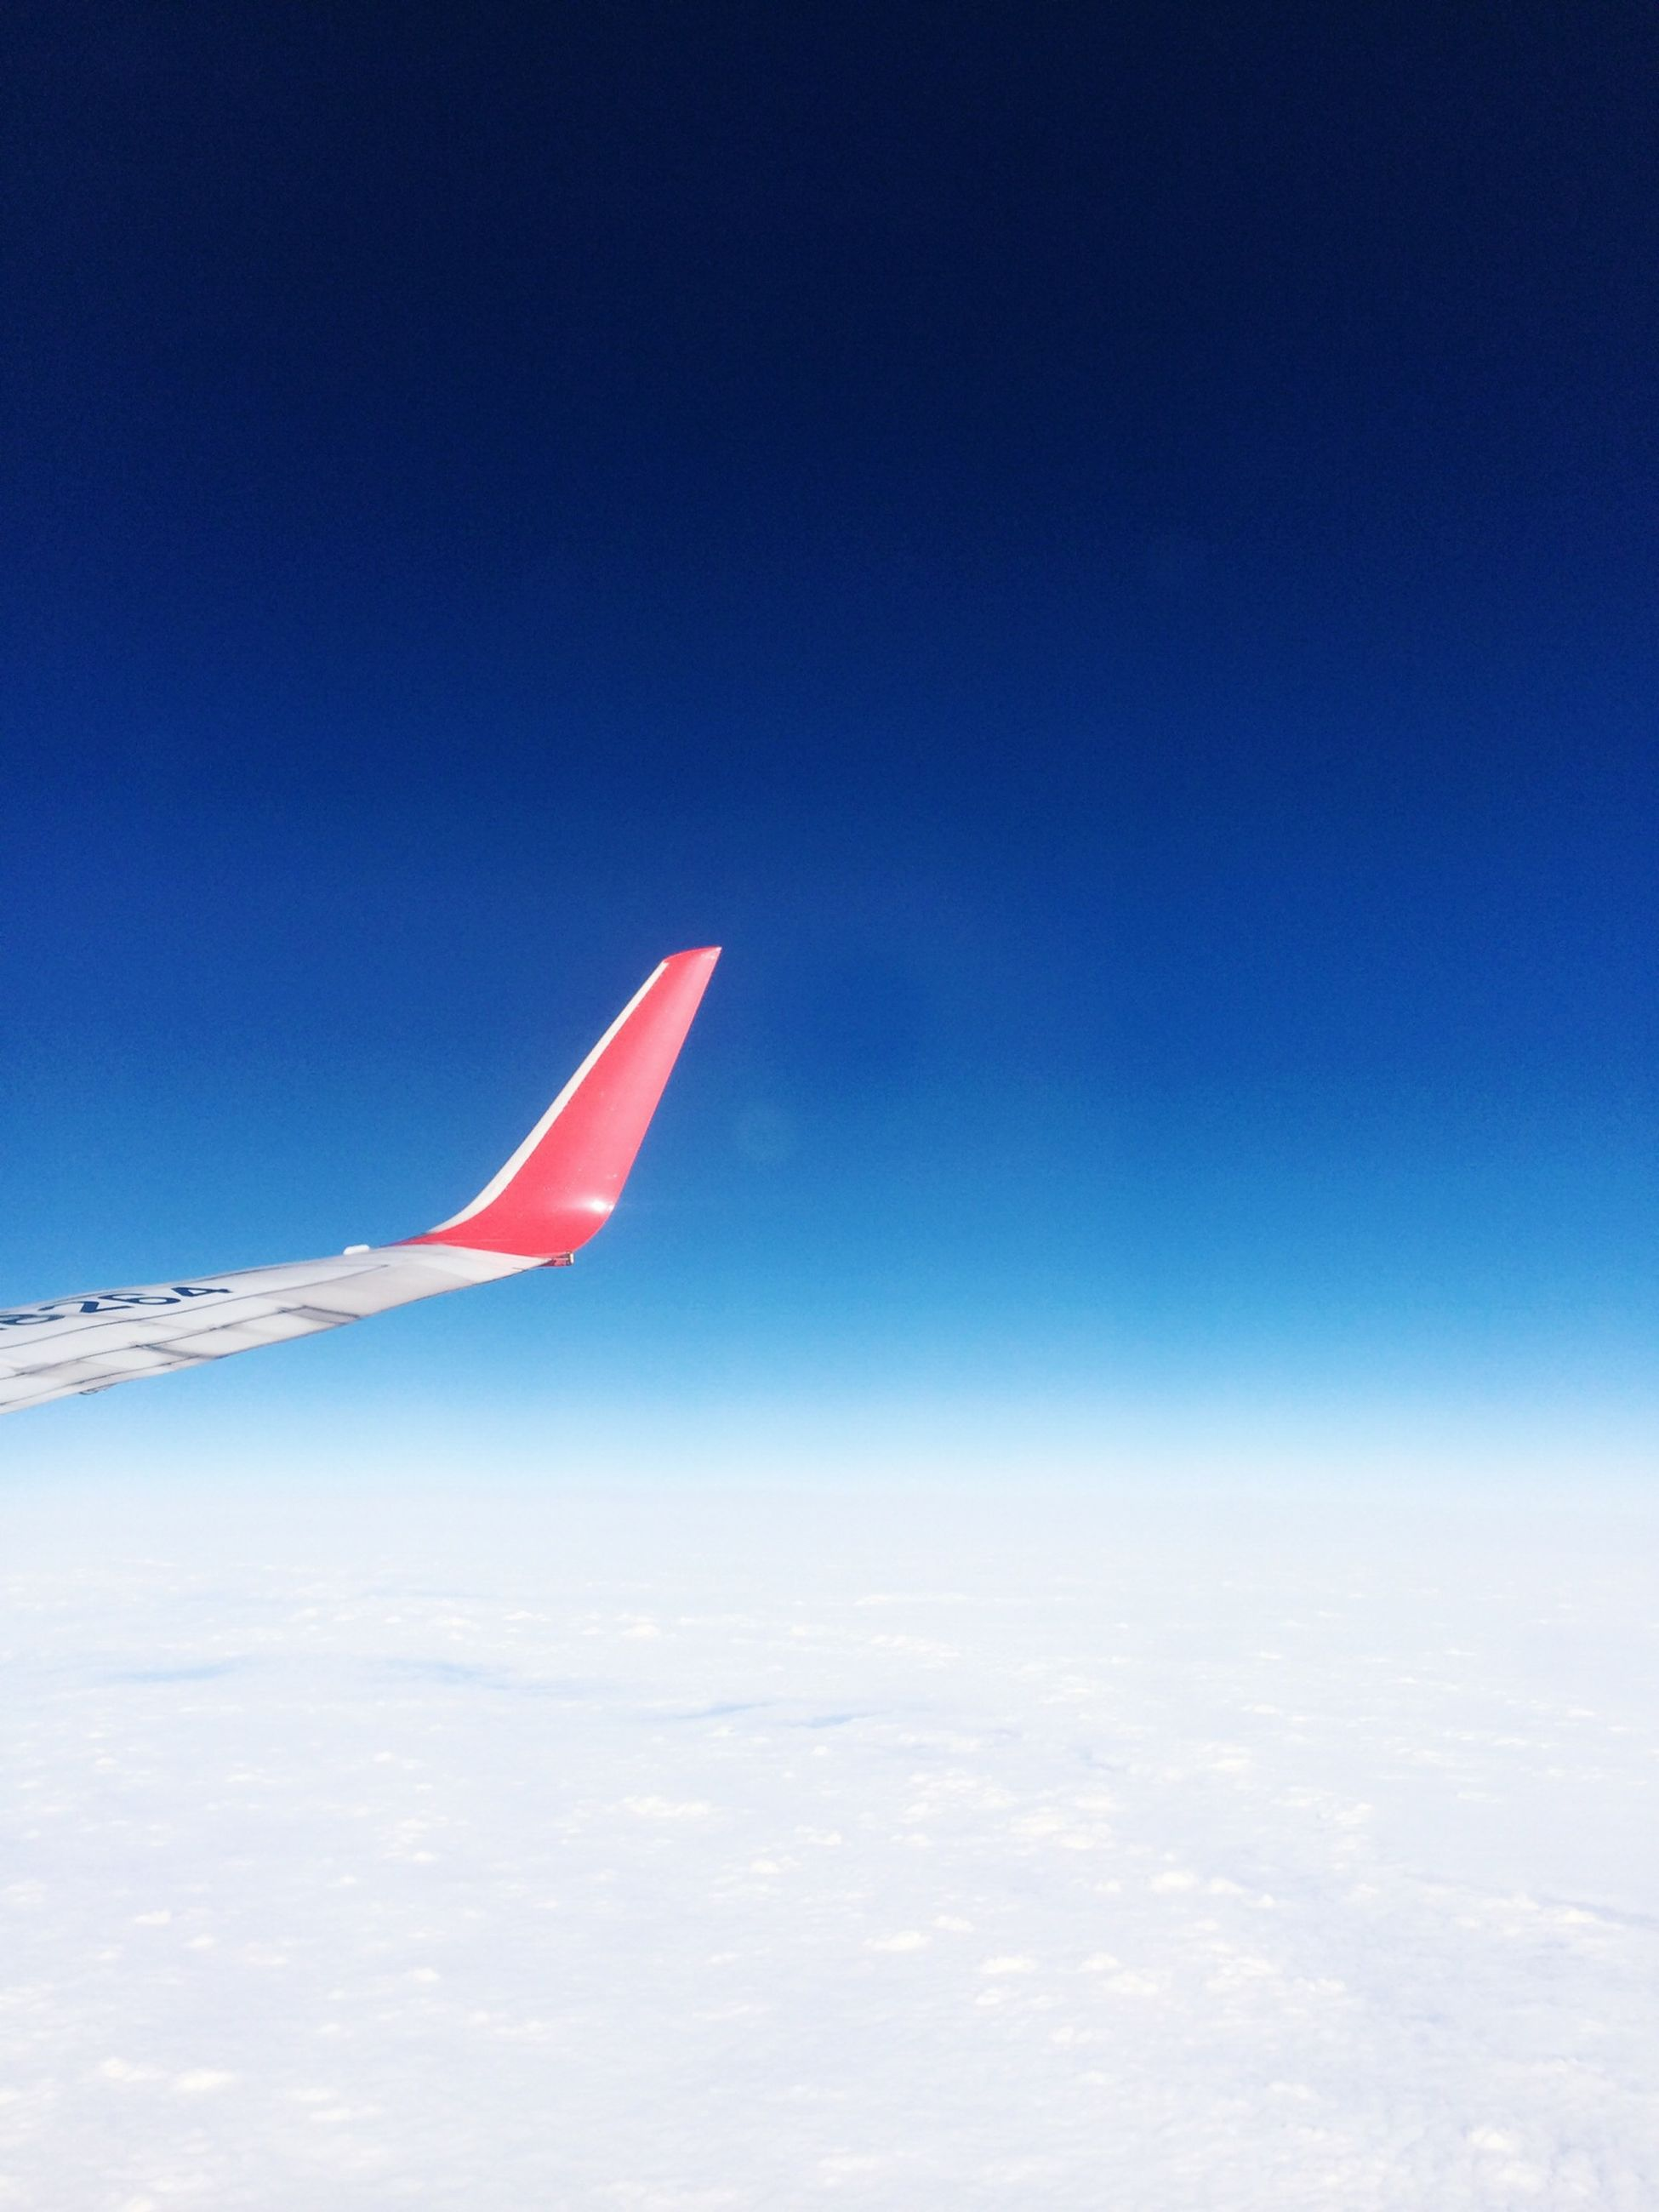 transportation, flying, air vehicle, airplane, blue, mode of transport, aircraft wing, copy space, clear sky, mid-air, travel, part of, journey, sky, on the move, cropped, nature, outdoors, no people, beauty in nature